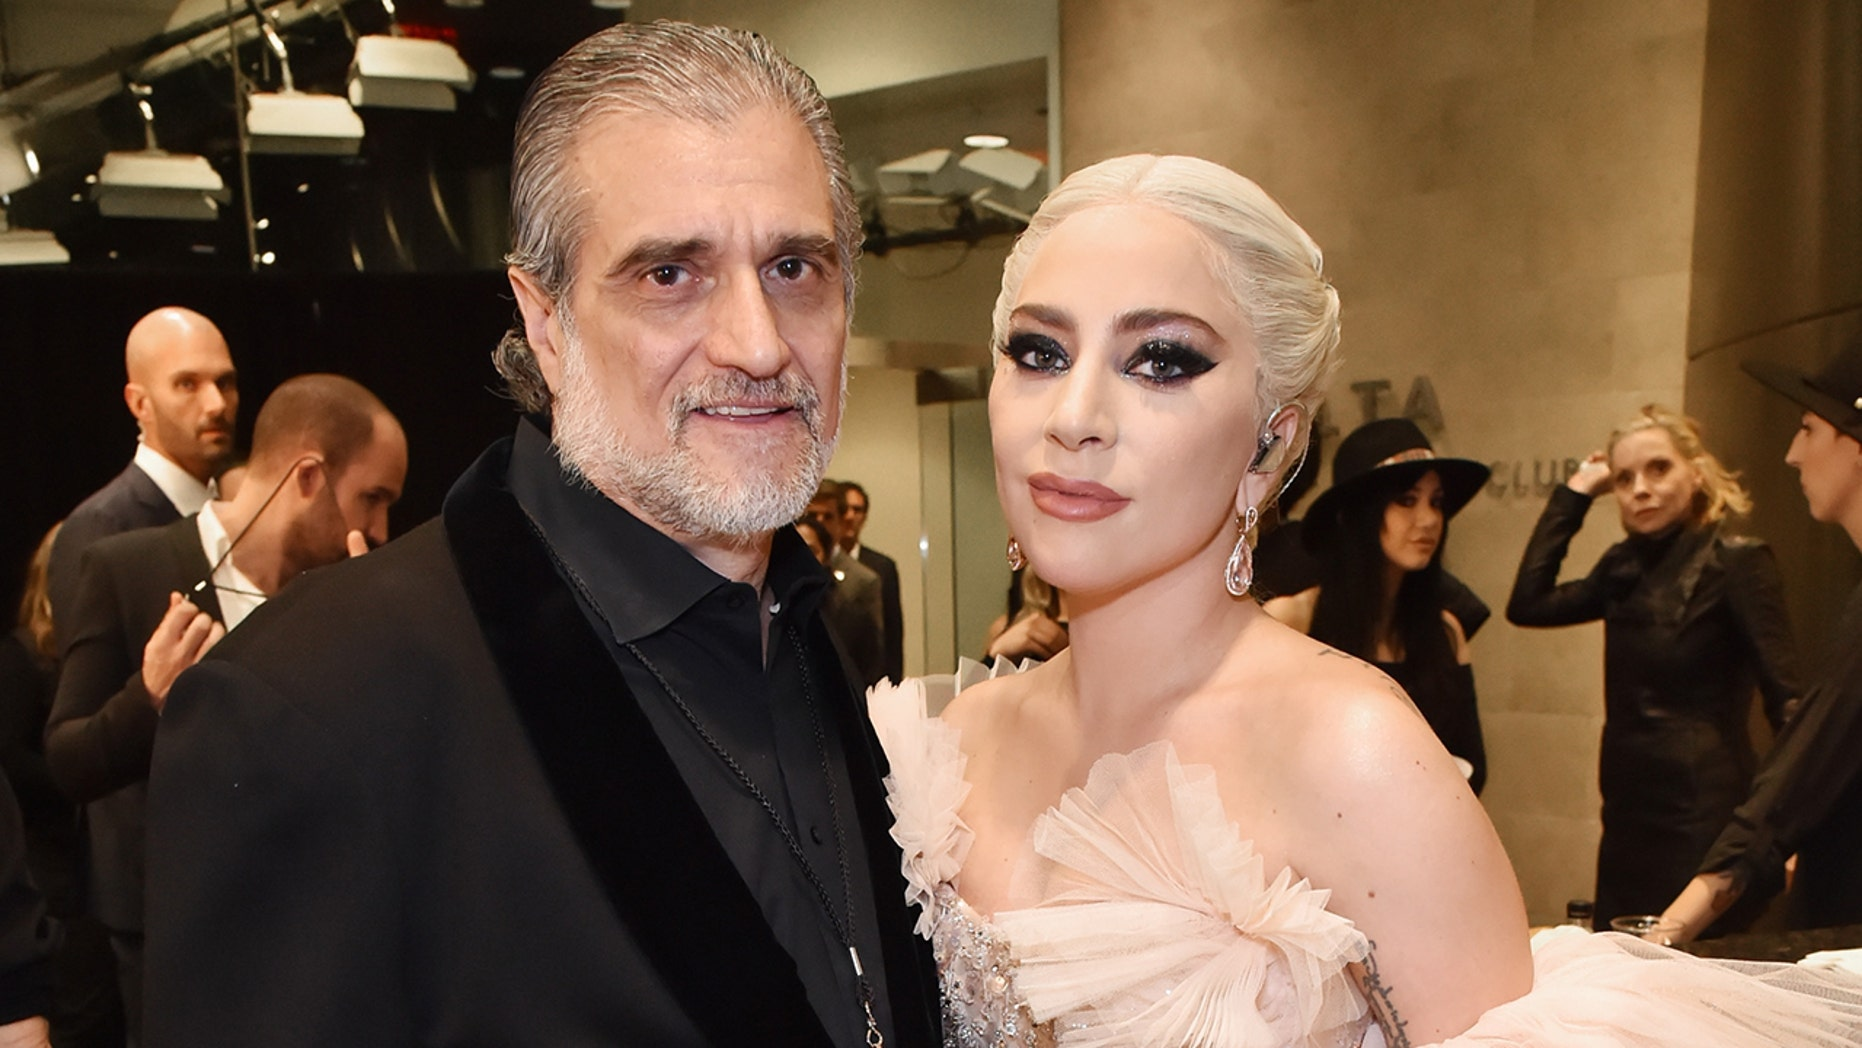 Lady Gaga's dad pleads for public's help after her dog walker shot, dogs stolen